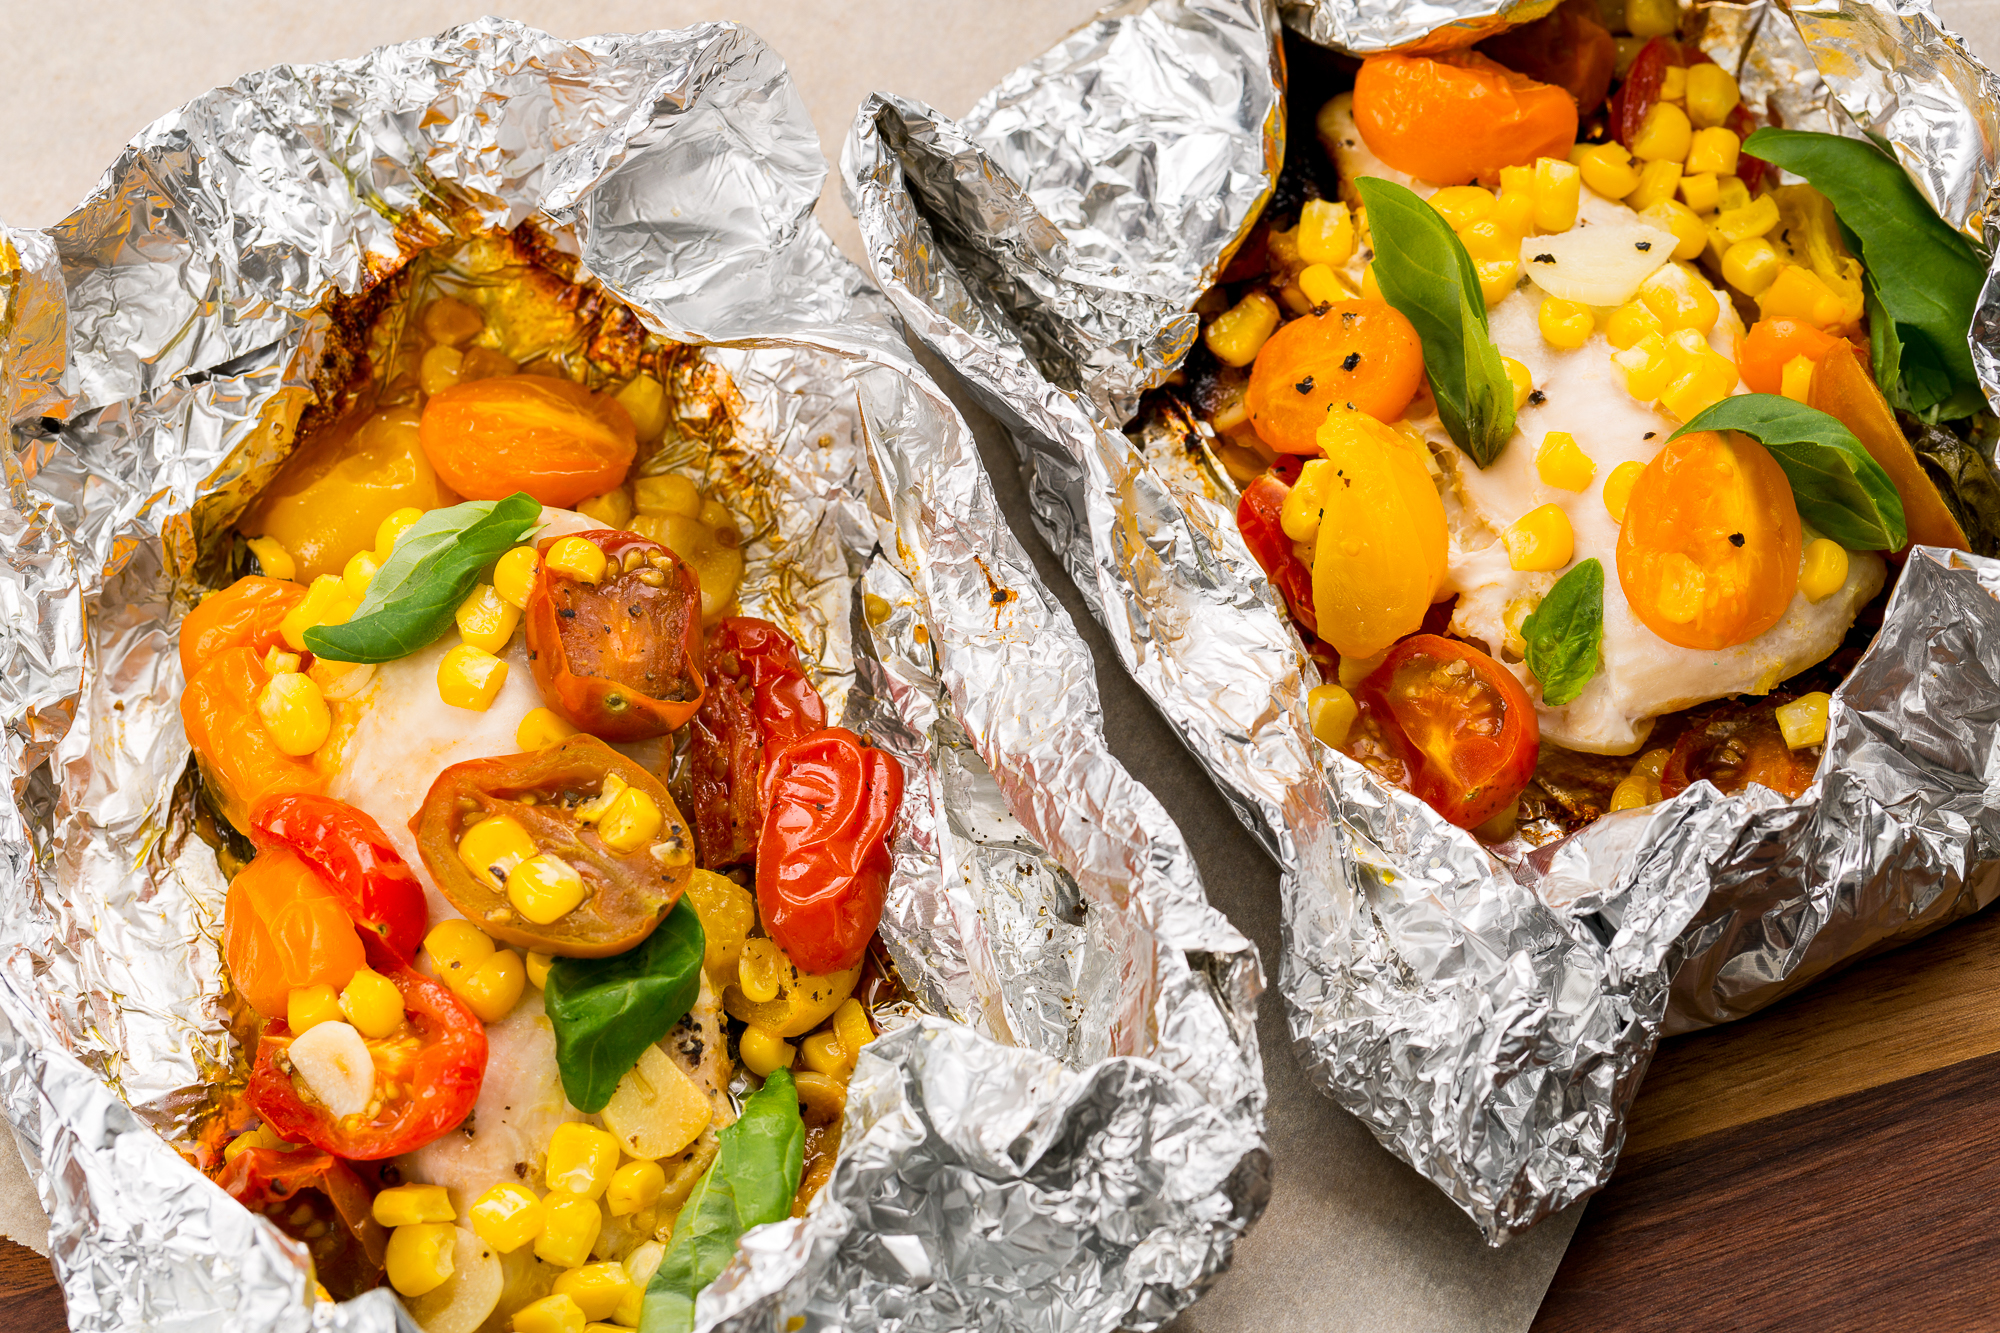 30 healthy grilling recipes healthy bbq ideas for the for Chicken and vegetables in foil packets recipe